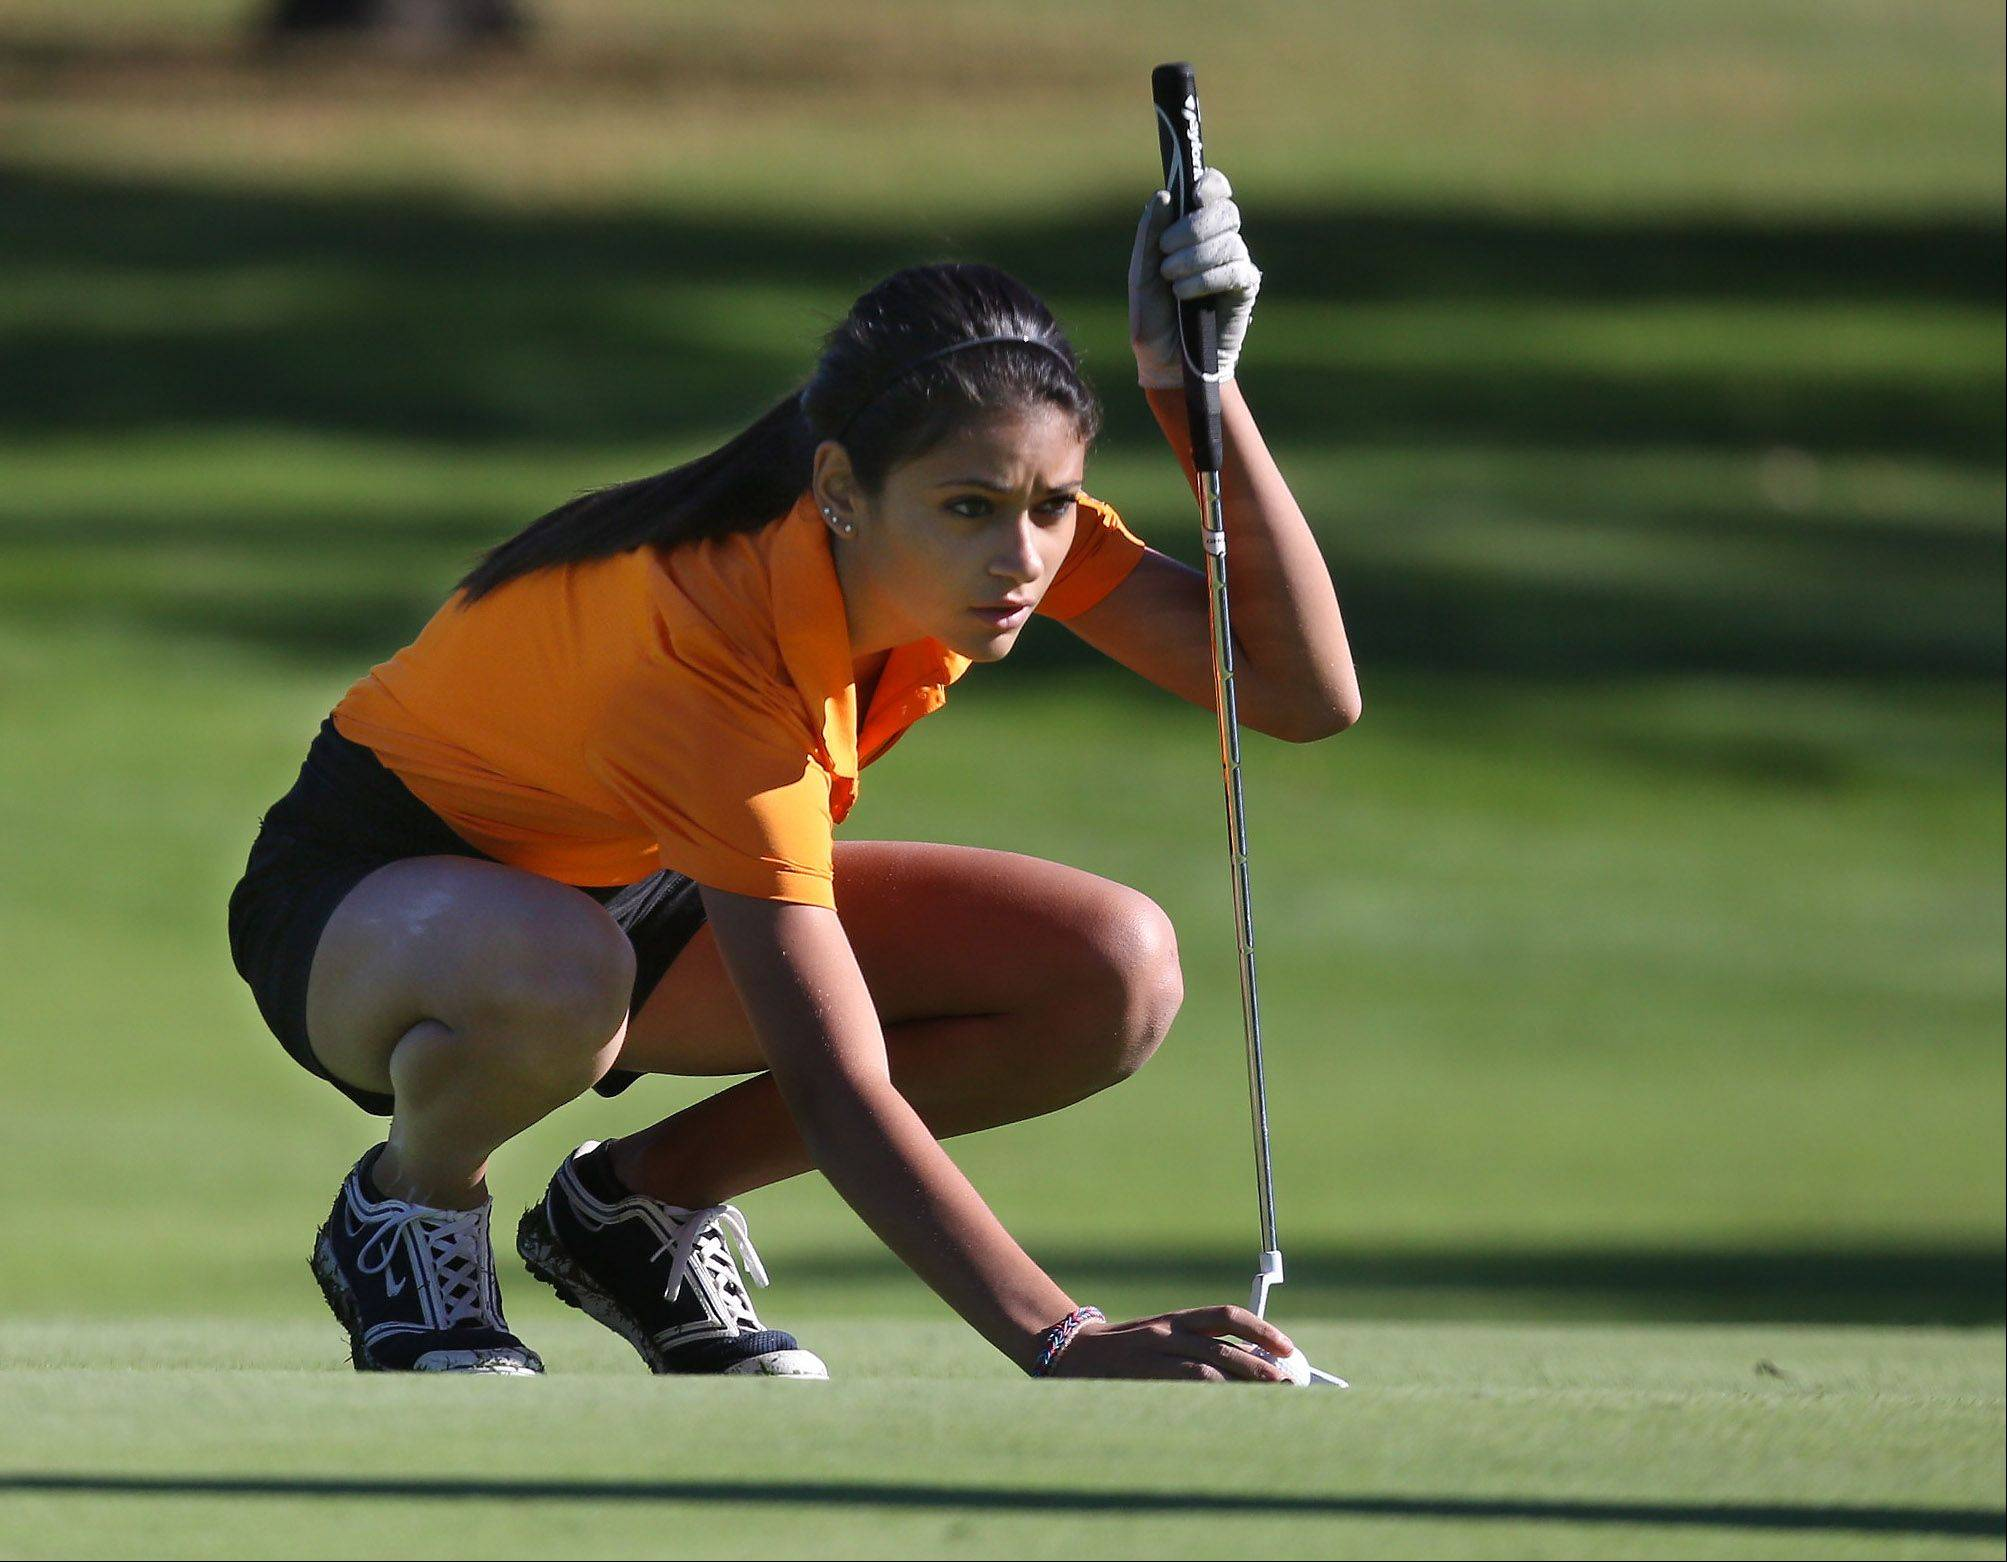 Libertyville golfer Simone Mikaelian lines up her putt on the first hole during the Class AA Carmel girls golf regional Wednesday at Bonnie Brook.